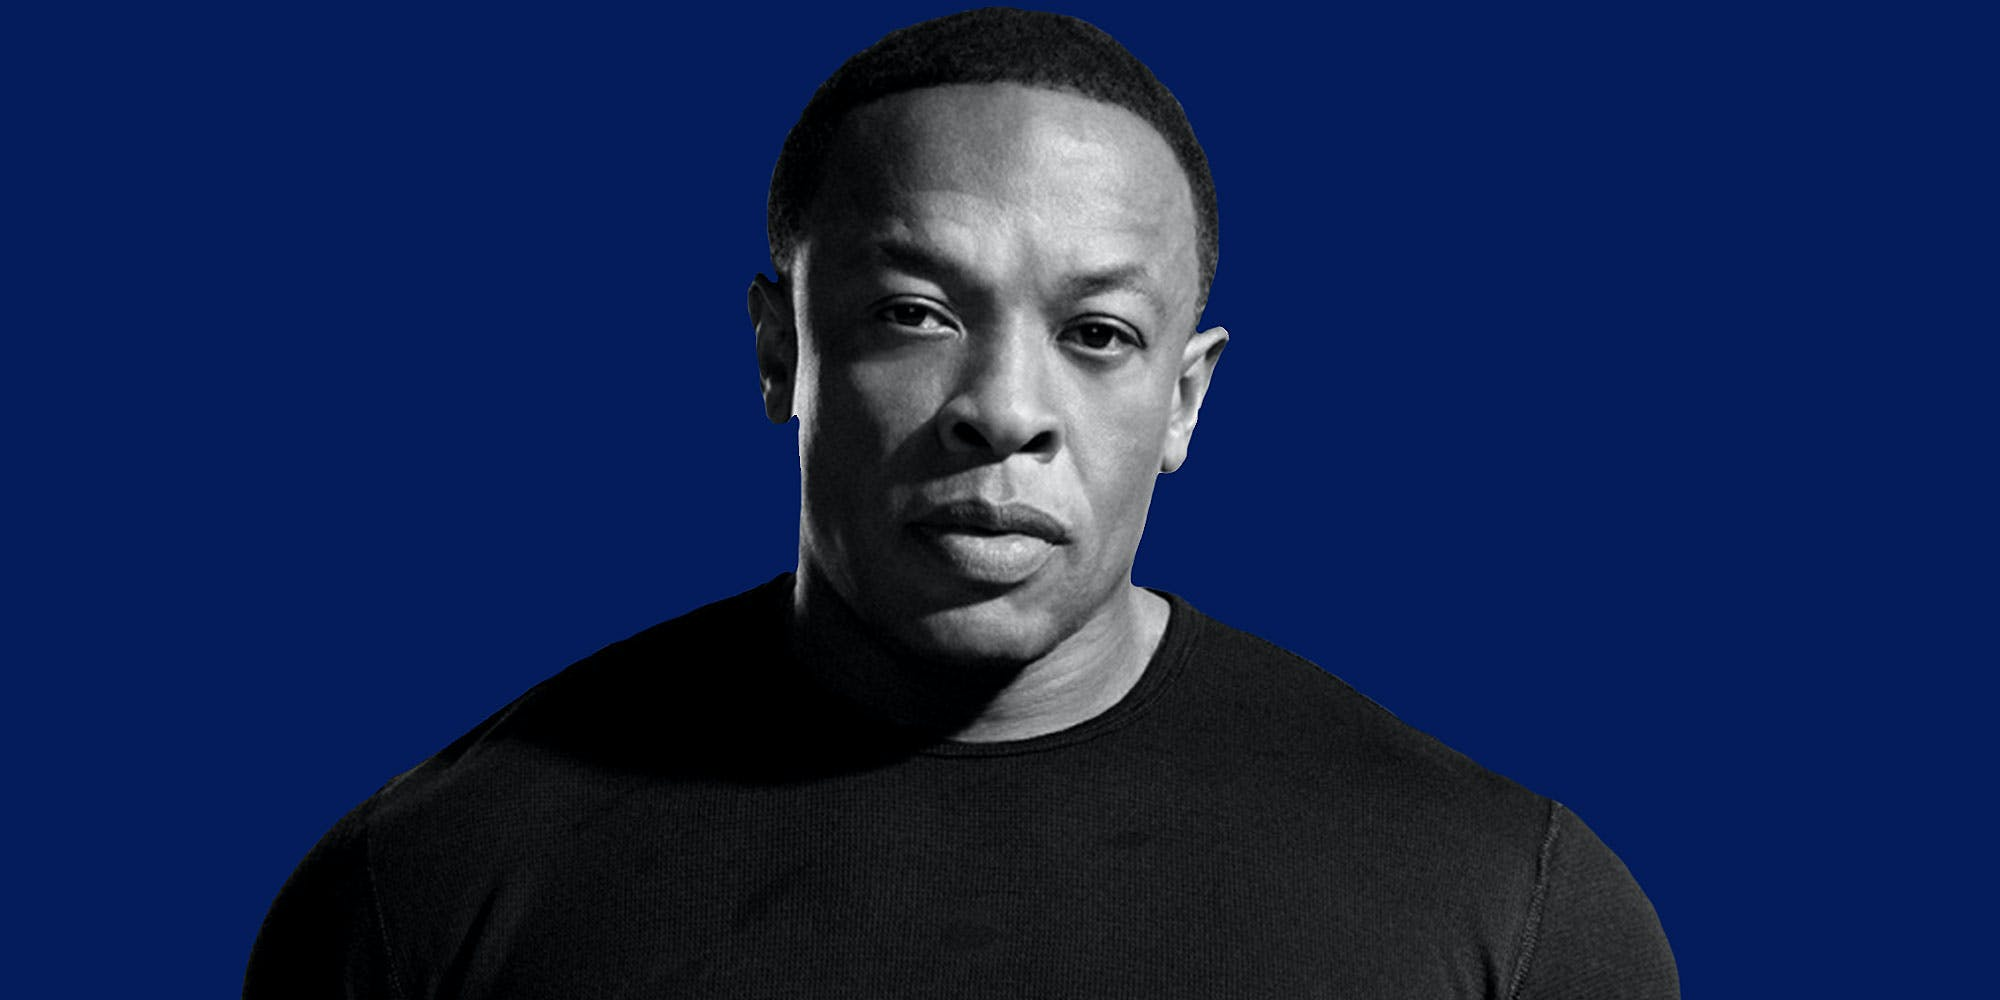 'Chronic by Dre' Cannabis Brand Planned Without Dre's Permission. Here, a photo of Dre is shown.